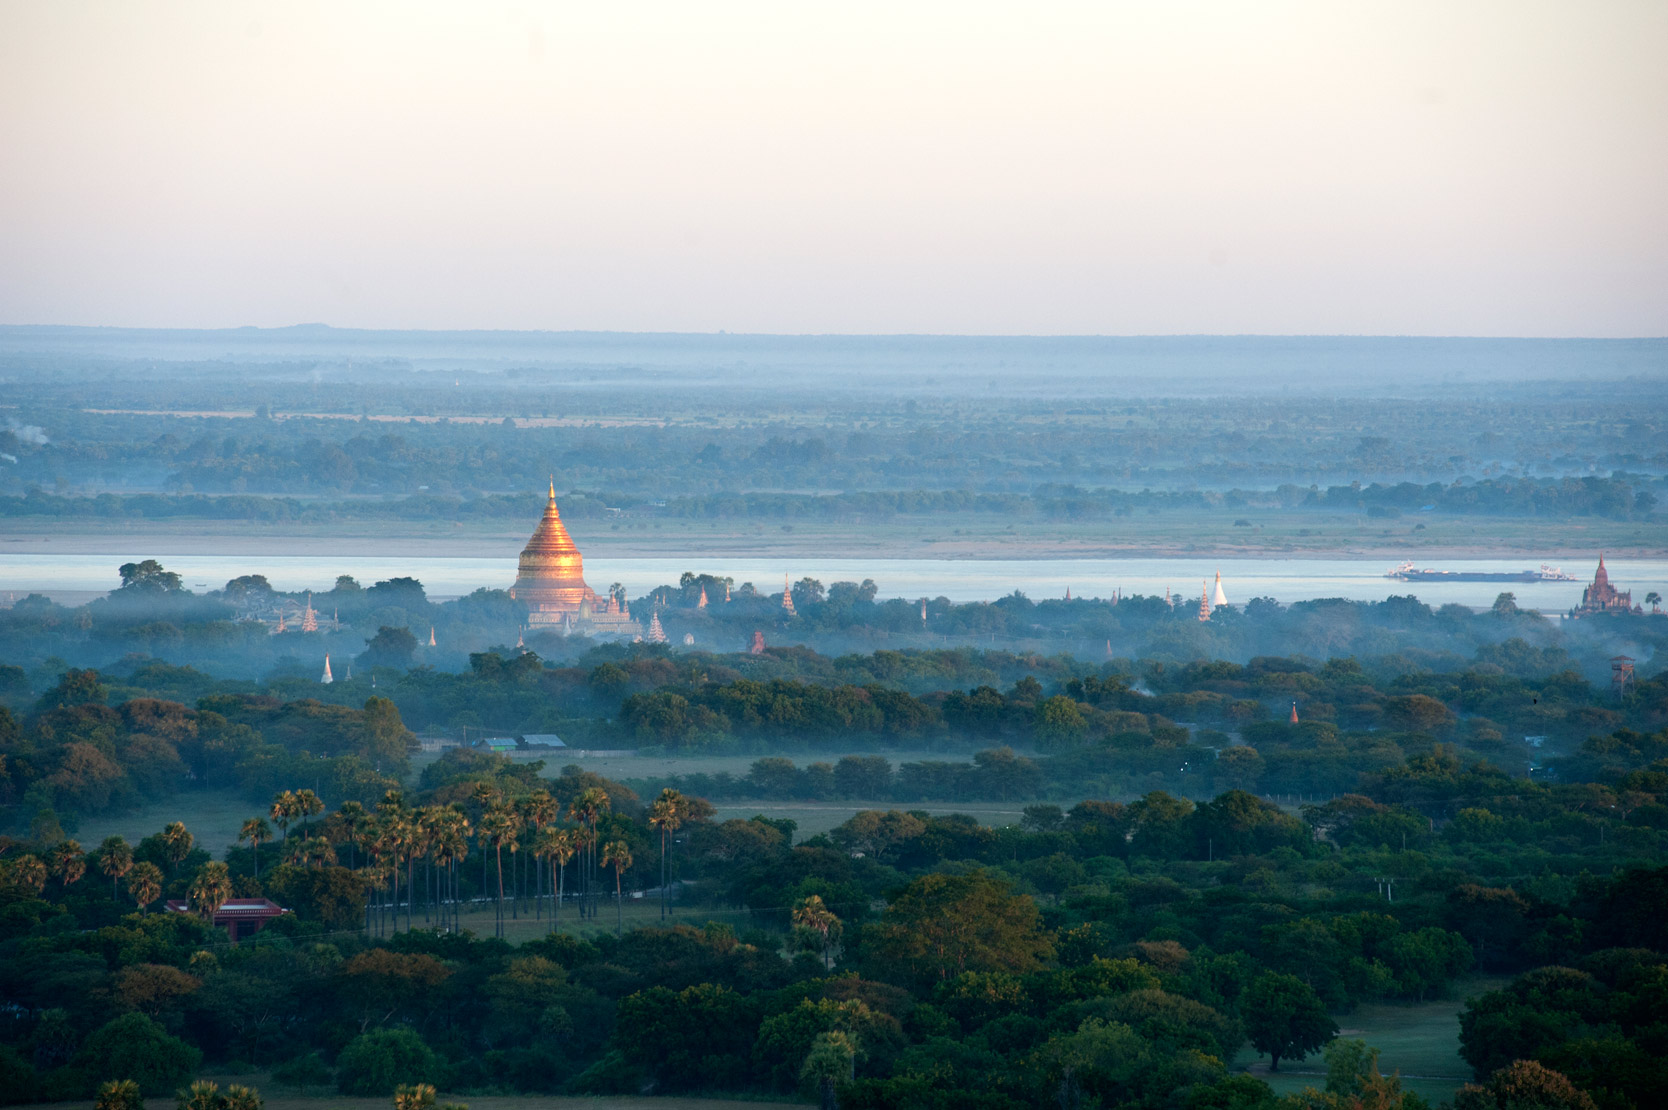 Early morning sunlight on the Shwezigon Paya, amongst mists rising from the nearby Irrawaddy River, Bagan Mandalay Division.